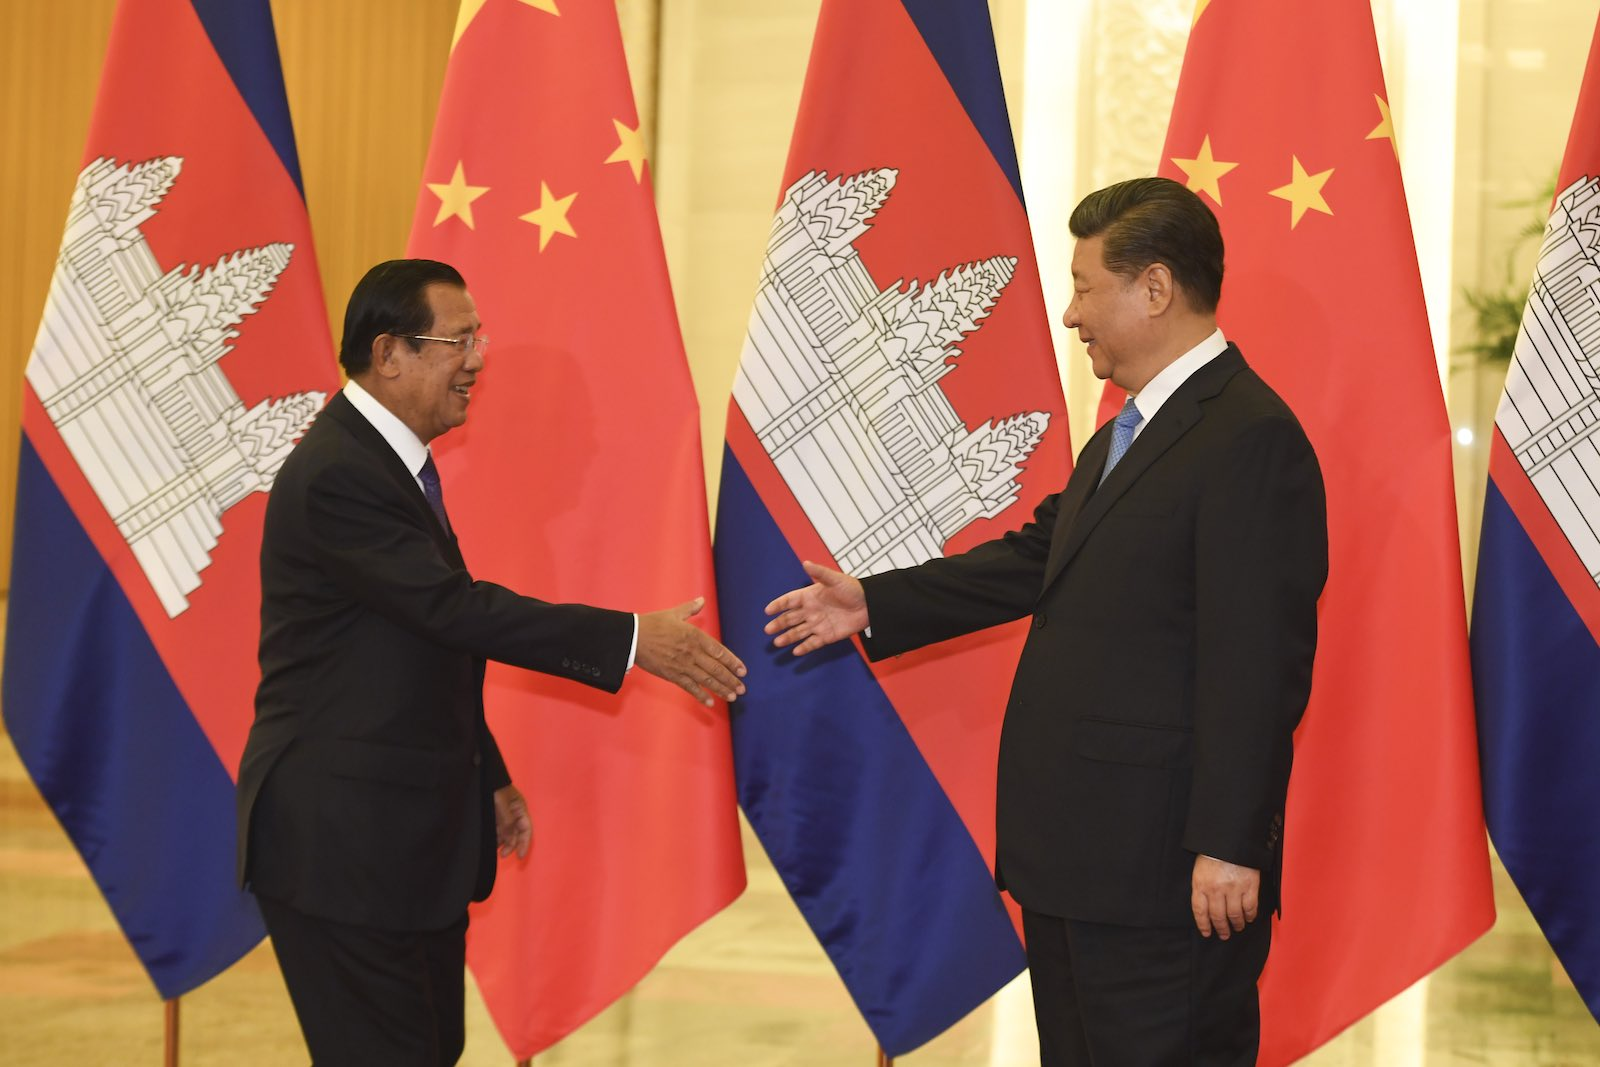 The deeper Sino-Cambodia relationship is certain to stir discomfort in the US, too (Photo: Madoka Ikegami via Getty)